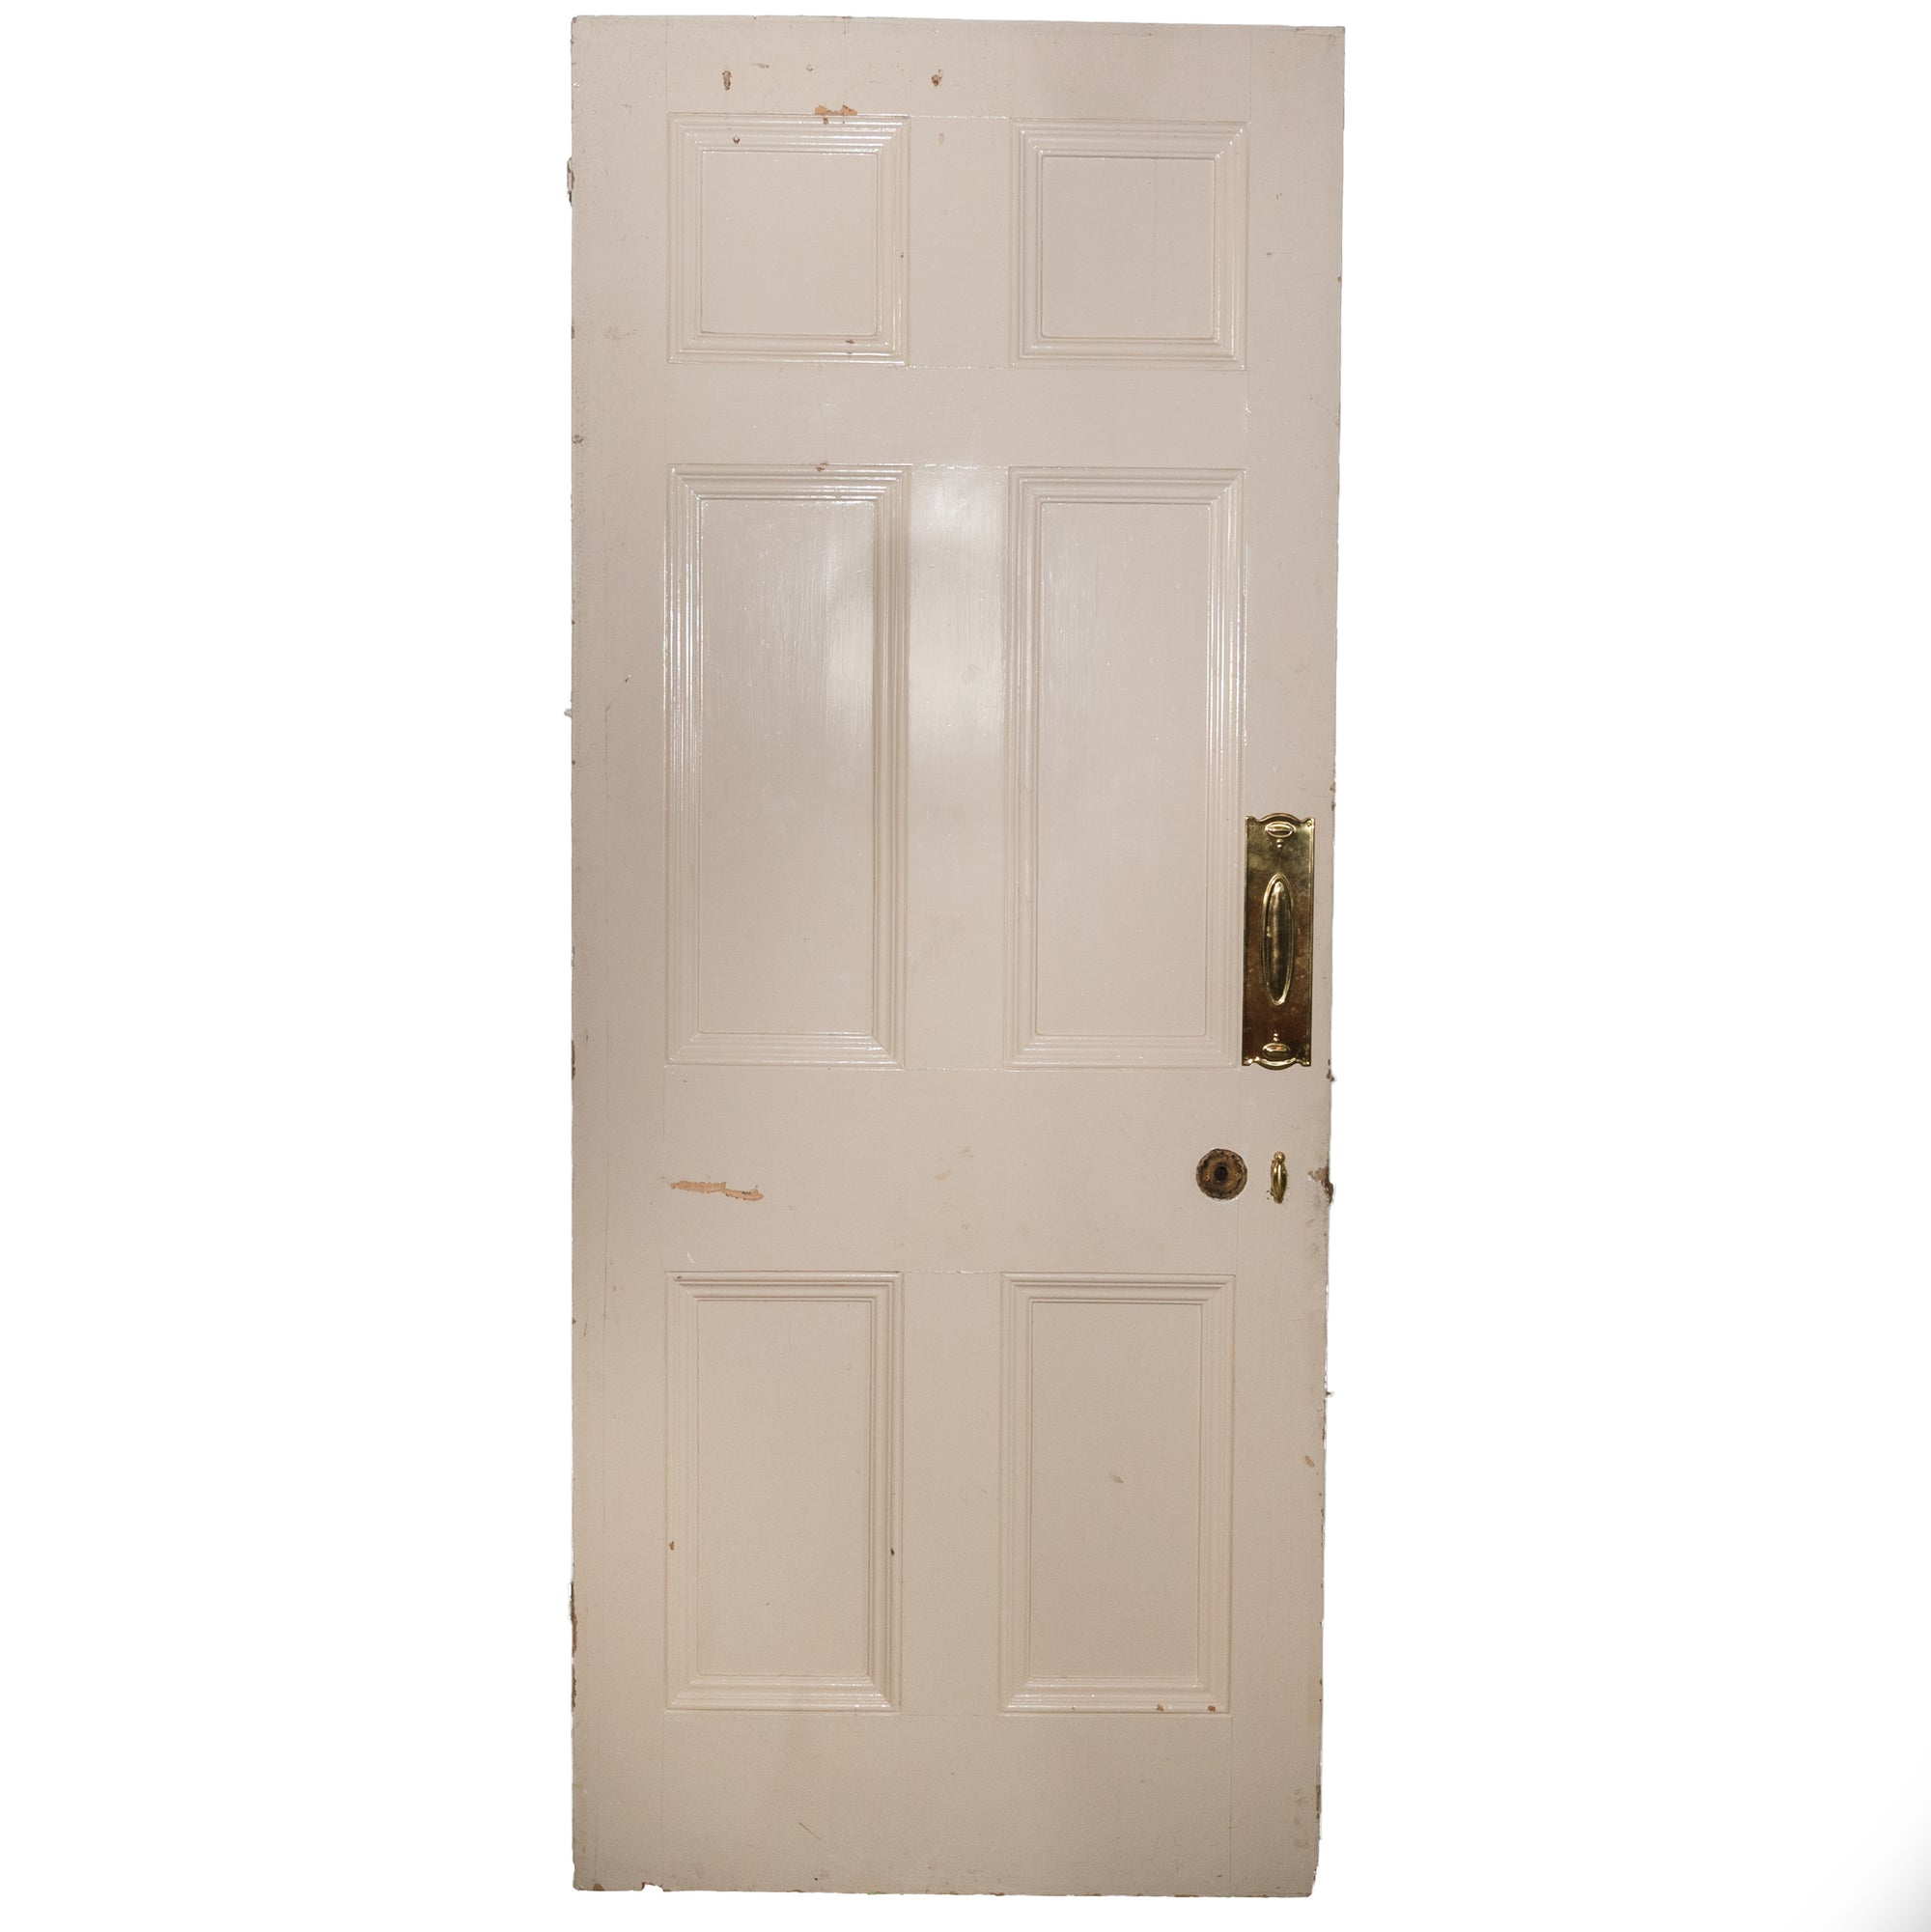 Antique Georgian six Panelled Door - 205cm x 83cm - The Architectural Forum